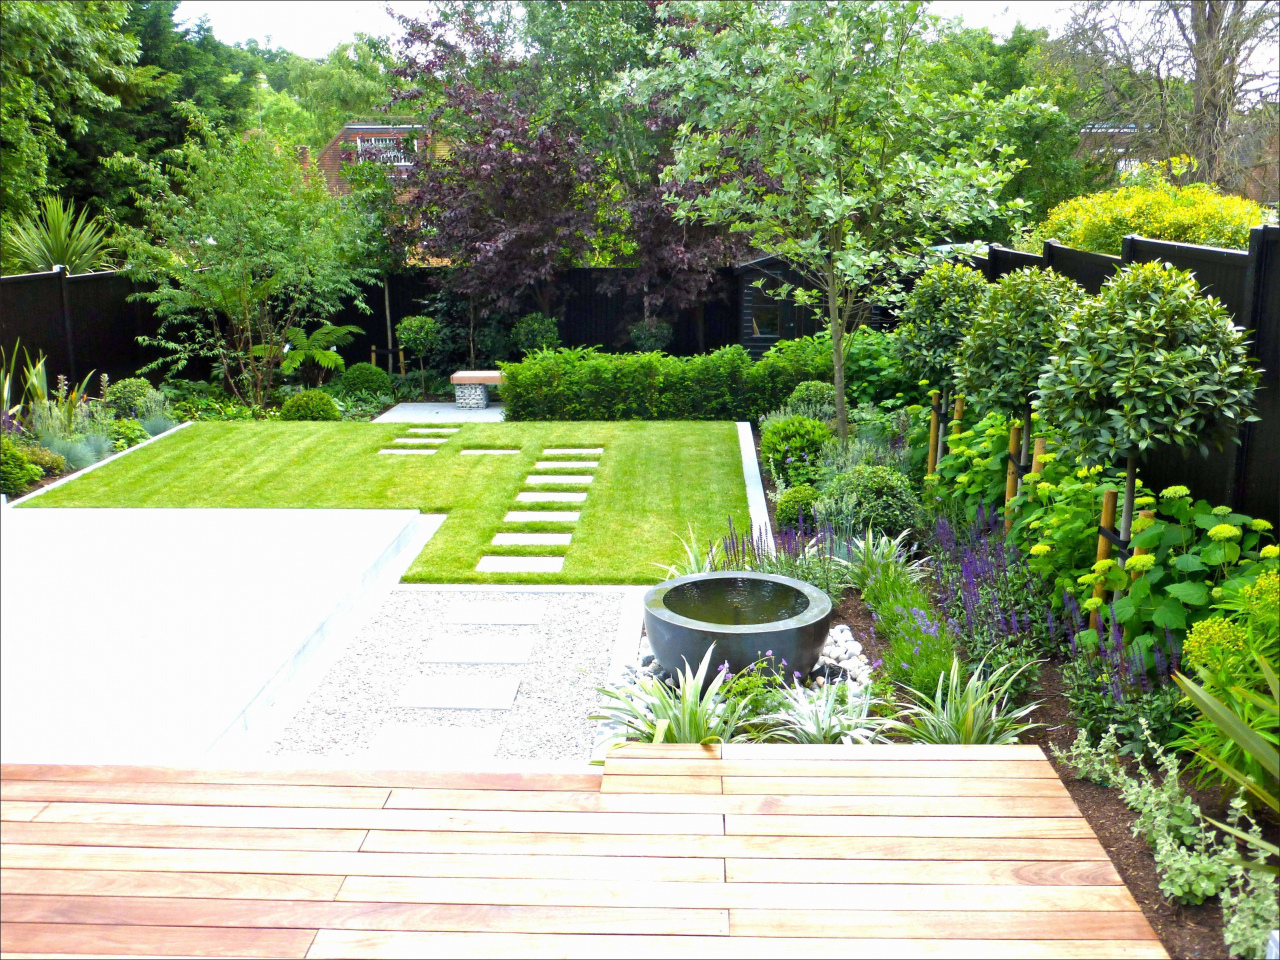 landscaping ideas around trees unique 20 ideas for landscaping around trees durch landscaping ideas around trees